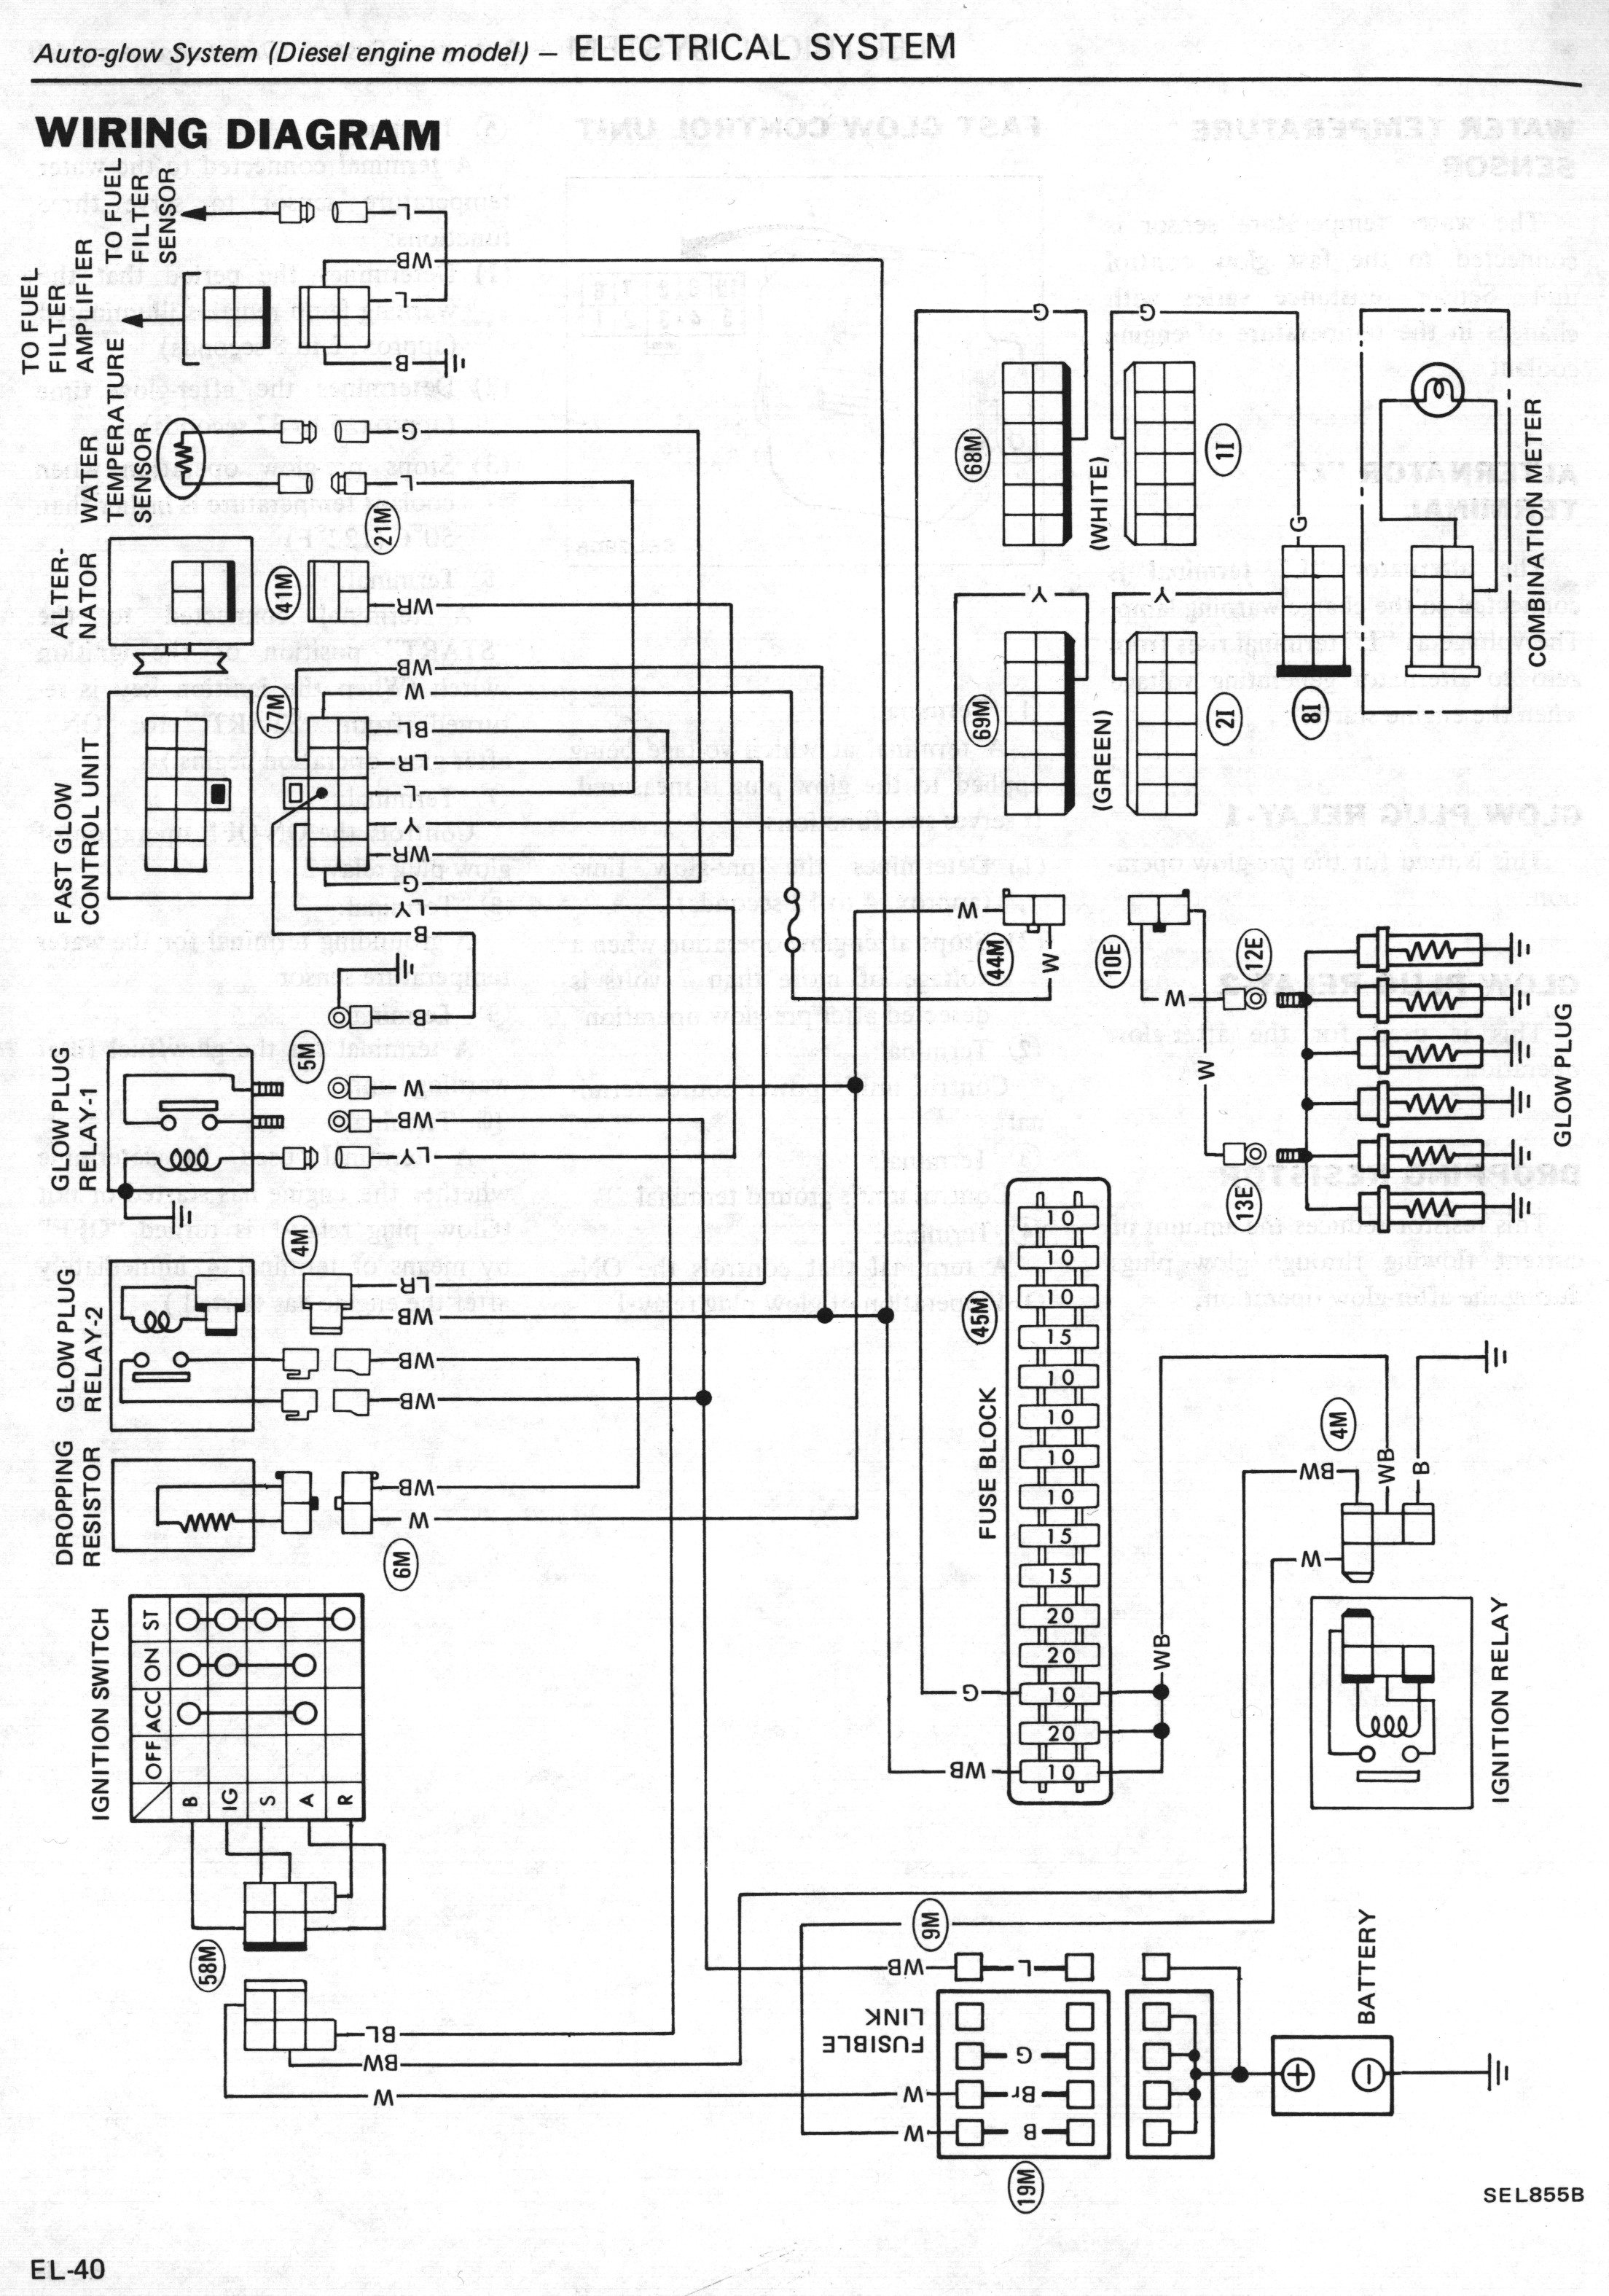 280zx stereo wiring diagram with Viewtopic on Vt 600 Wiring Diagram further Viewtopic likewise Wiring Diagram For 89 St in addition Fuse Box Diagram Z31 Wiring likewise 1978 280z Wiring Diagram.